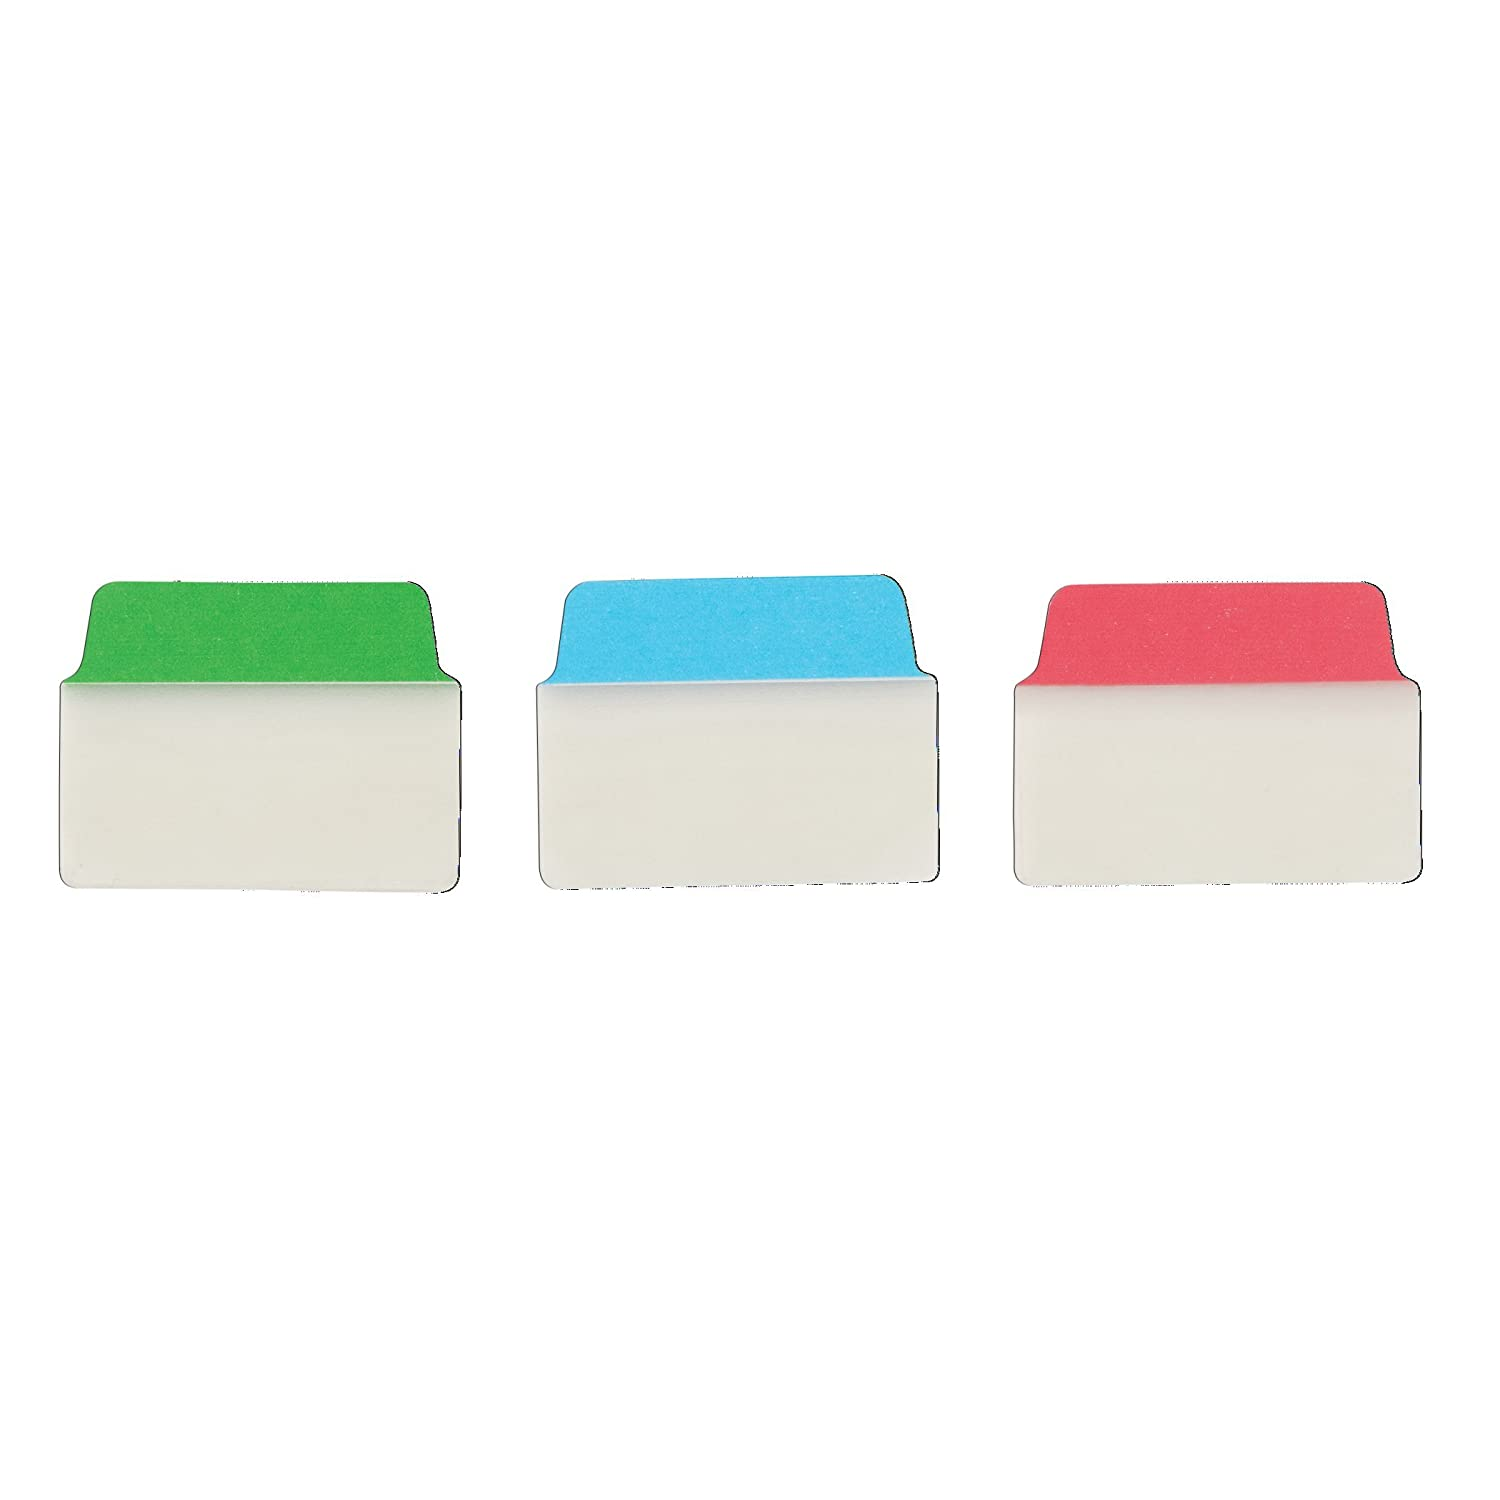 74774 Pastel Designs Avery Multiuse Design Ultra Tabs 2 x 1.5 2-Side Writable 24 Repositionable Tabs